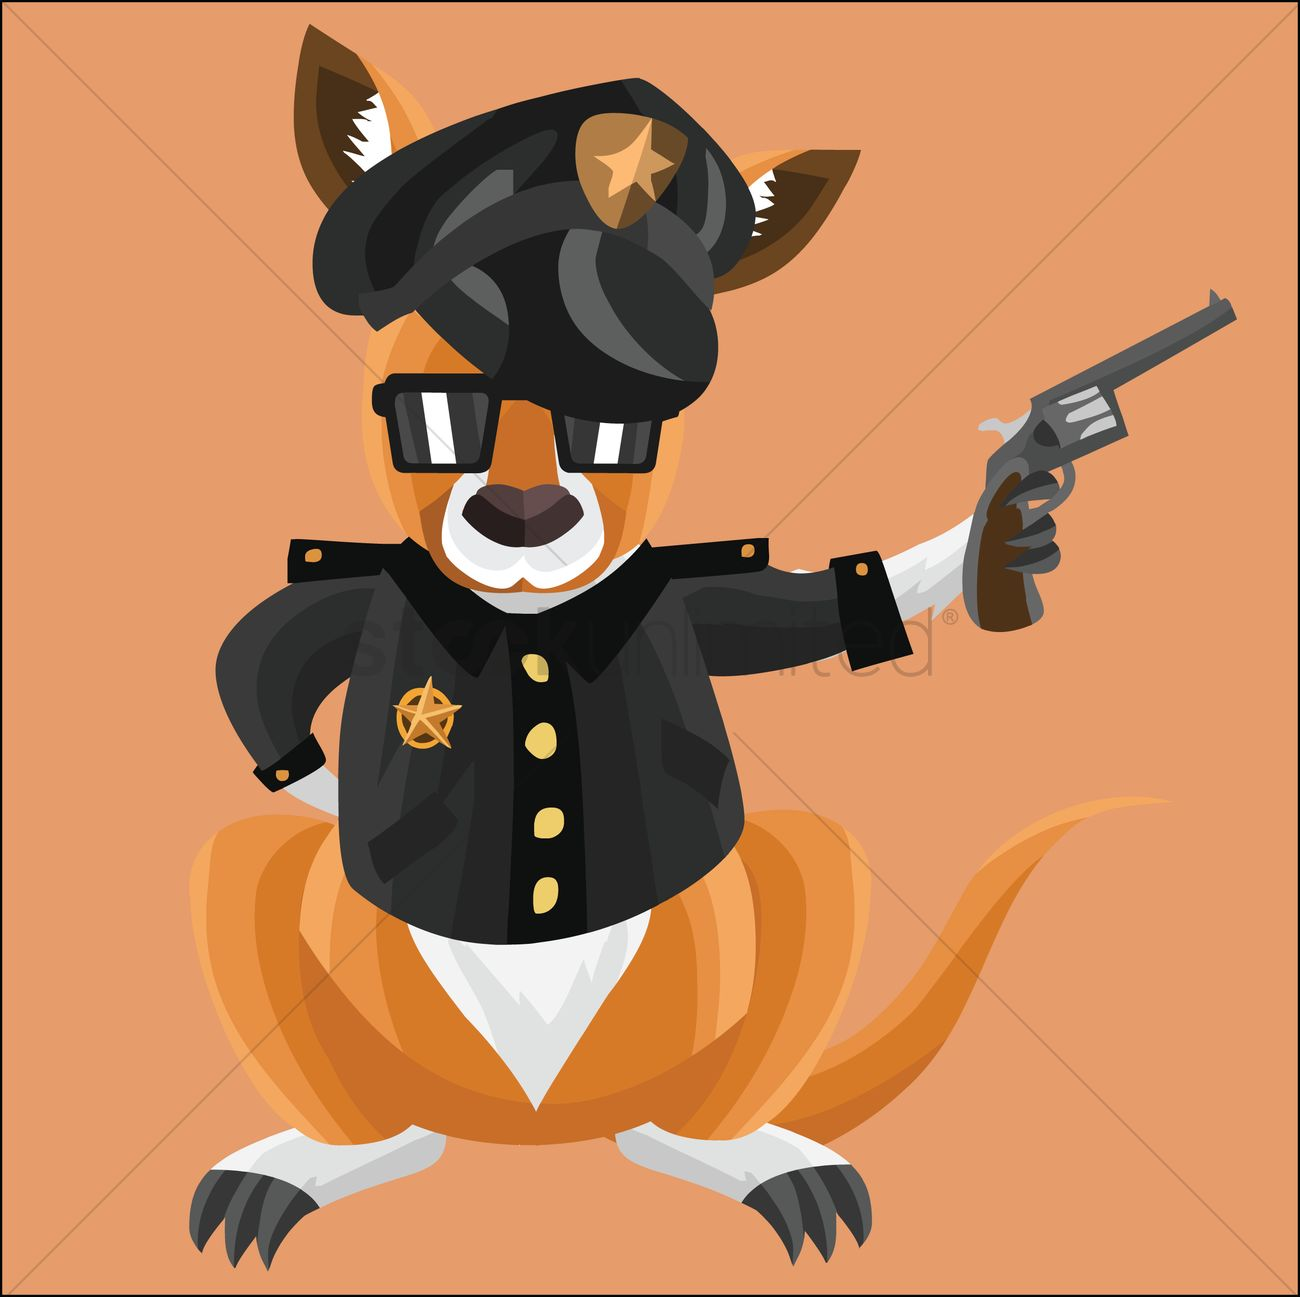 kangaroo as a cop on peach background vector image 1258902